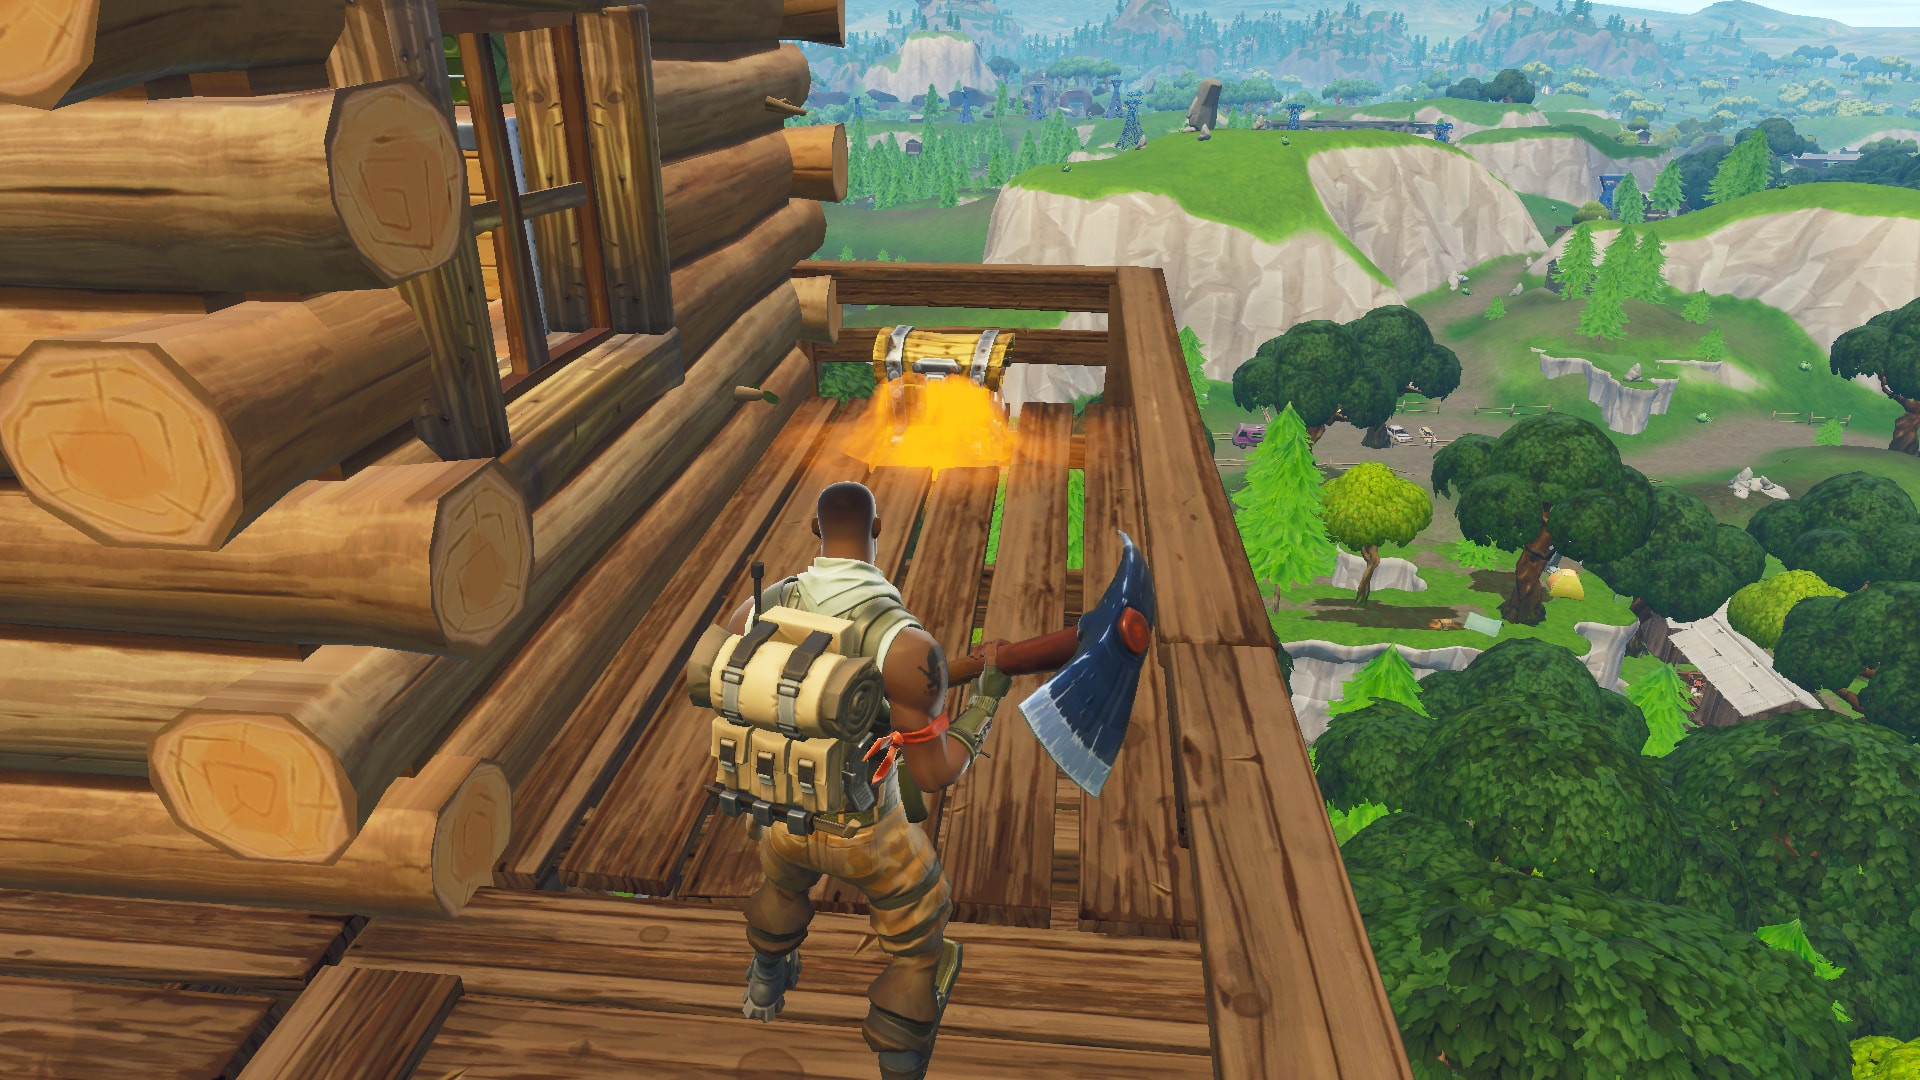 Chest Location 1 in Lonely Lodge | Fortnite - zilliongamer your game guide